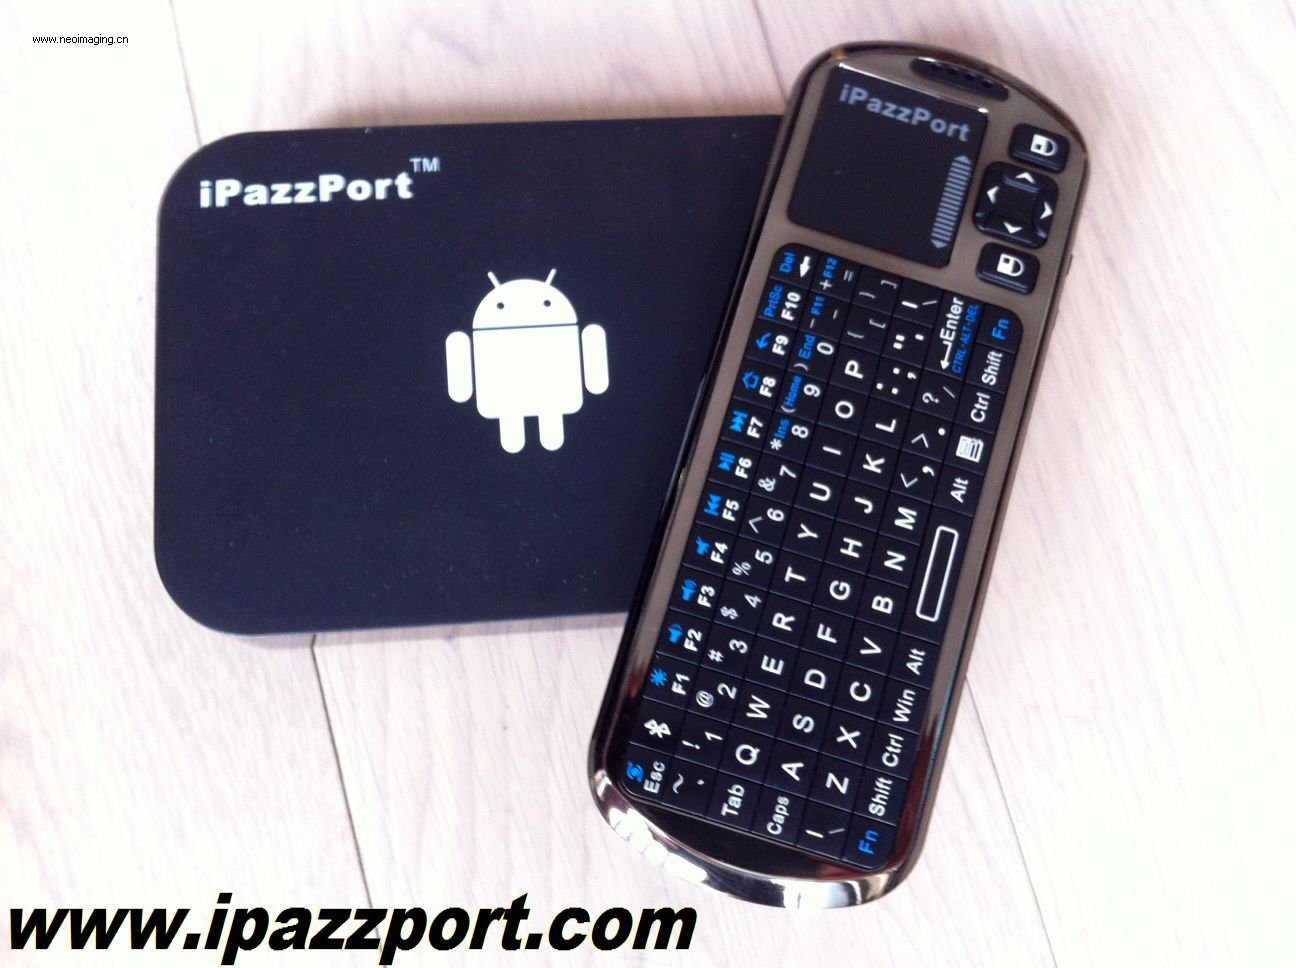 iPazzPort Smart tv/Android HTPC/IPTV Box with a Mini wireless voice